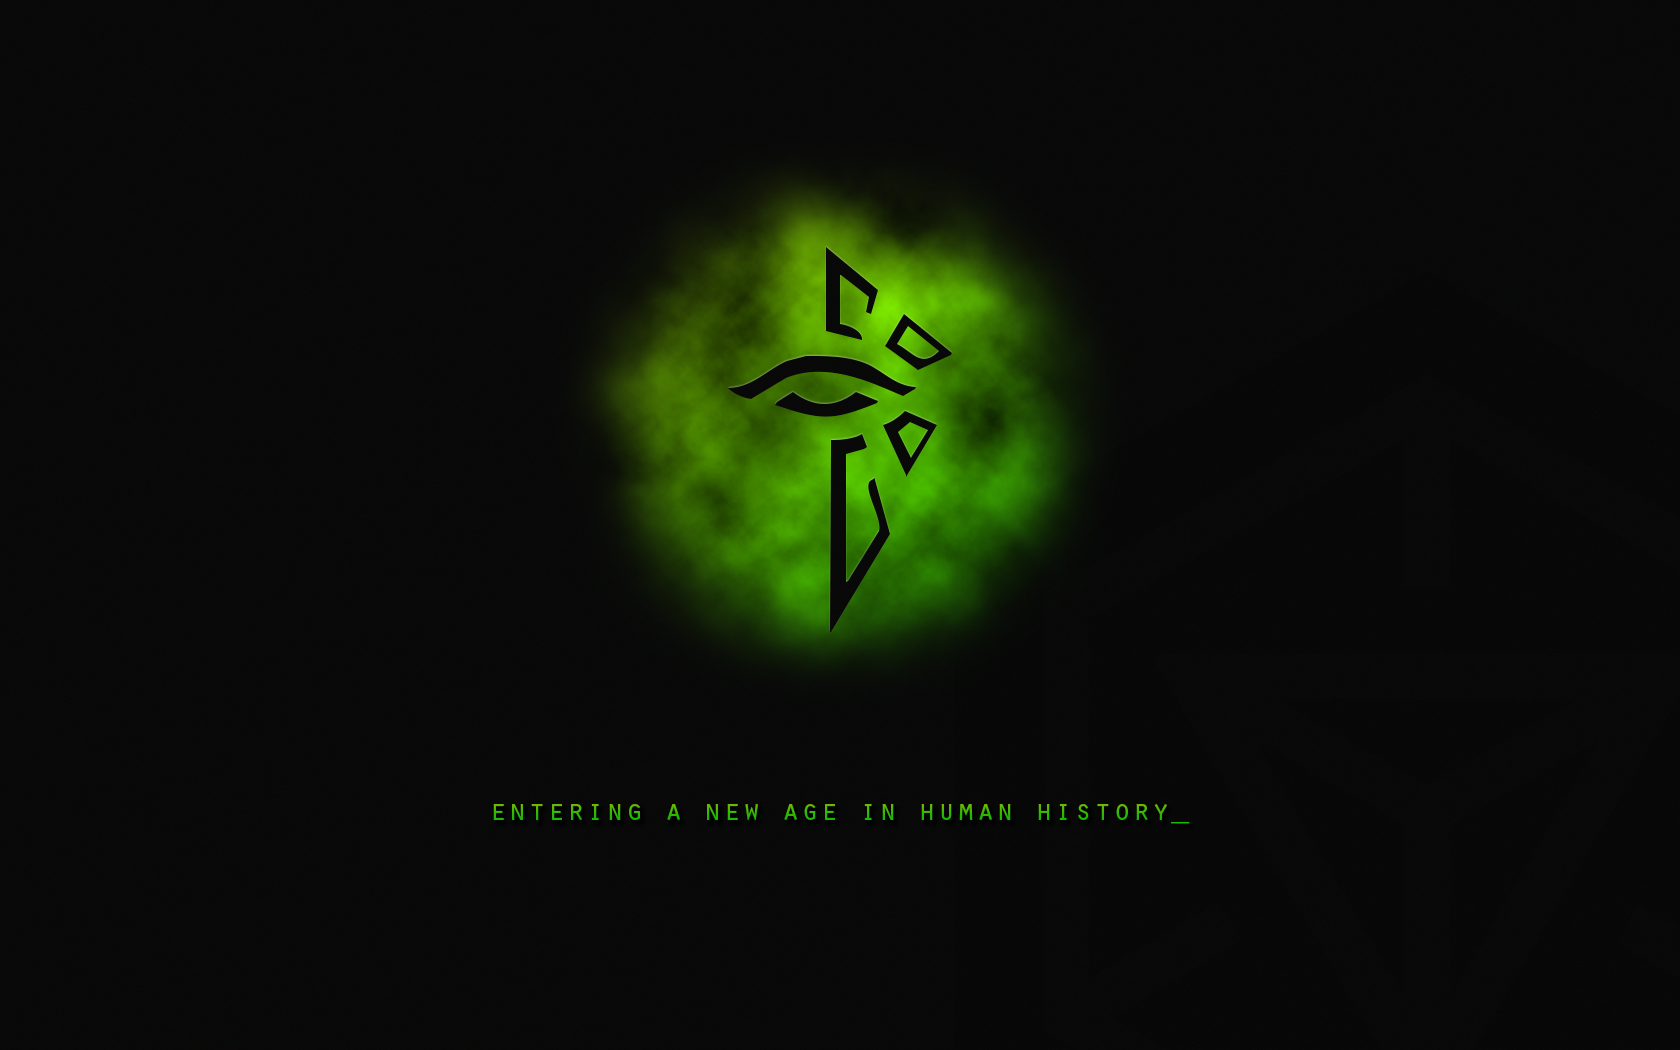 Ingress Wallpapers ID: WXW7878